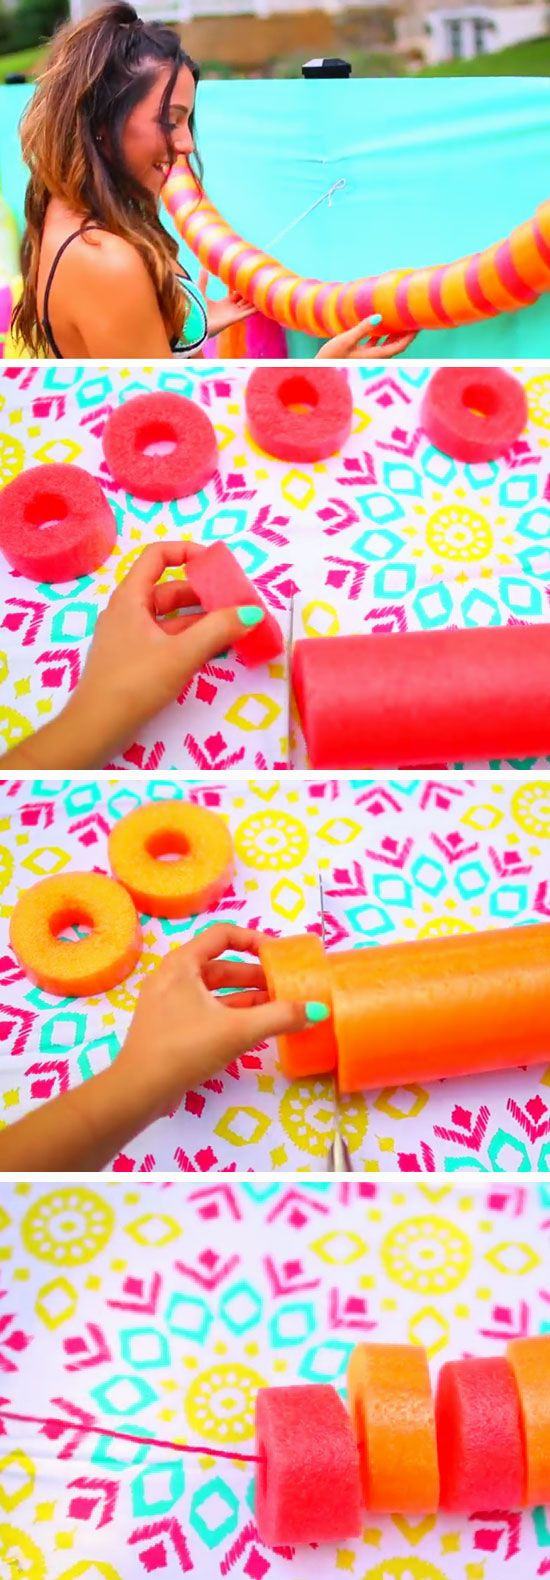 Teen Pool Party Ideas  23 Super Cool Pool Party Ideas for Teens